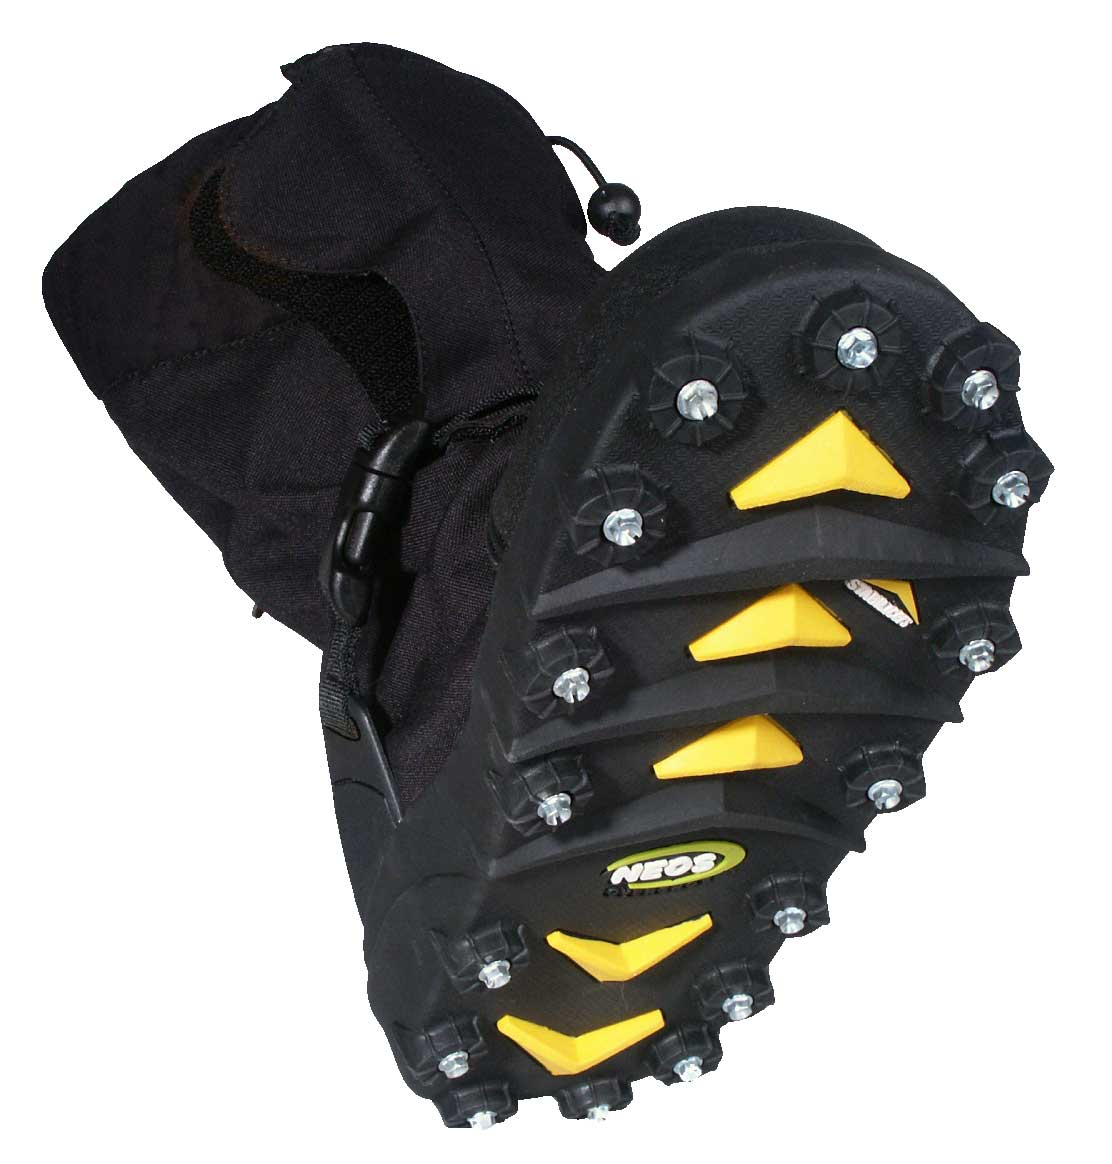 STABILicers Overshoe w/ Cleats, Small. Men's Sizes 6 - 7.5